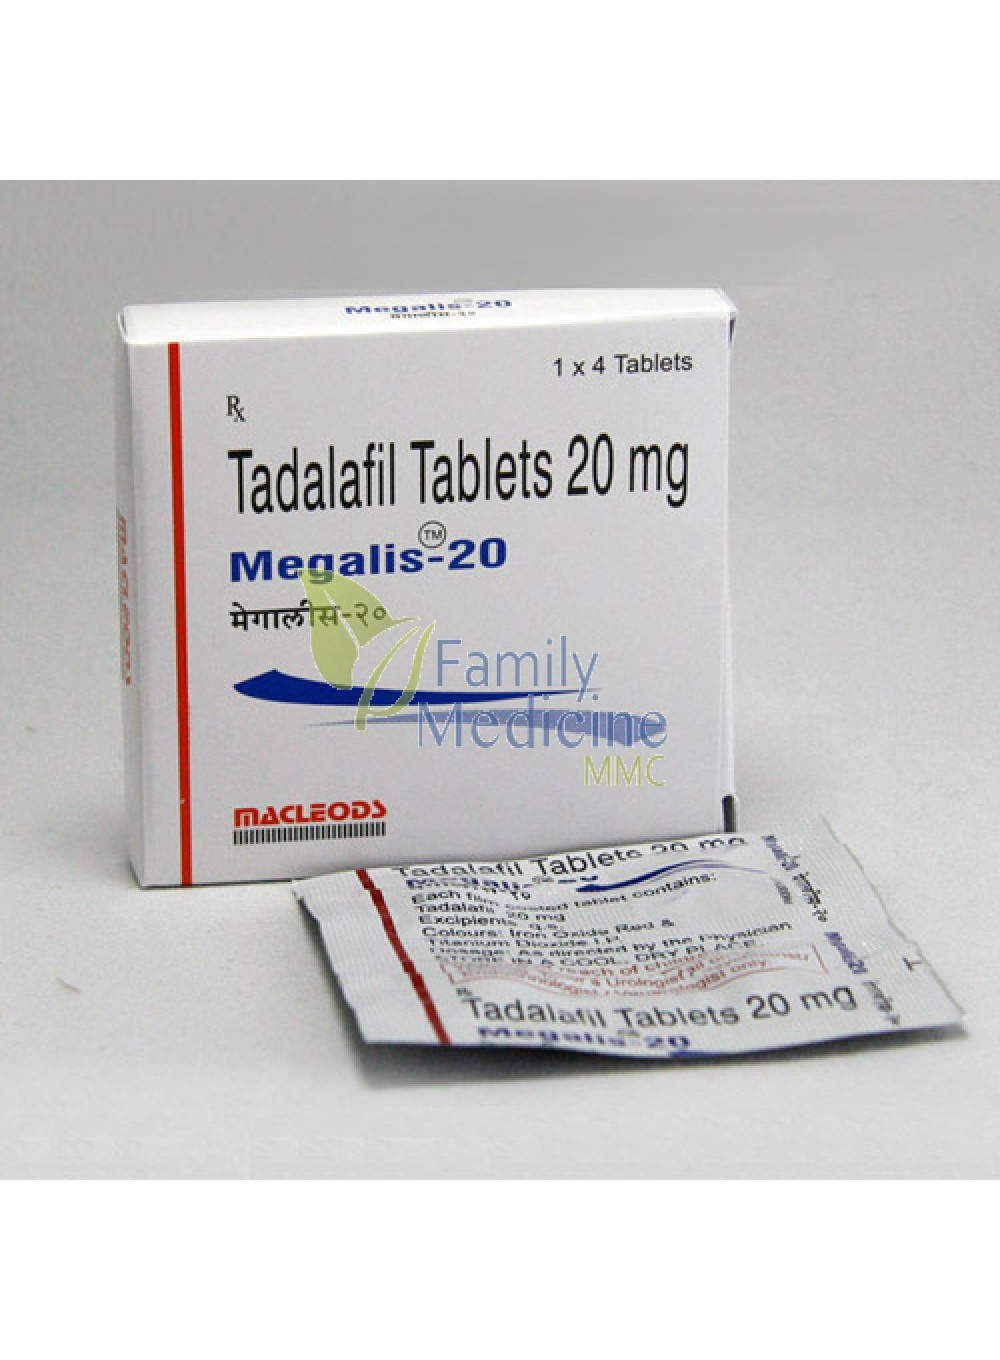 Blood pressure tablets and erectile dysfunction